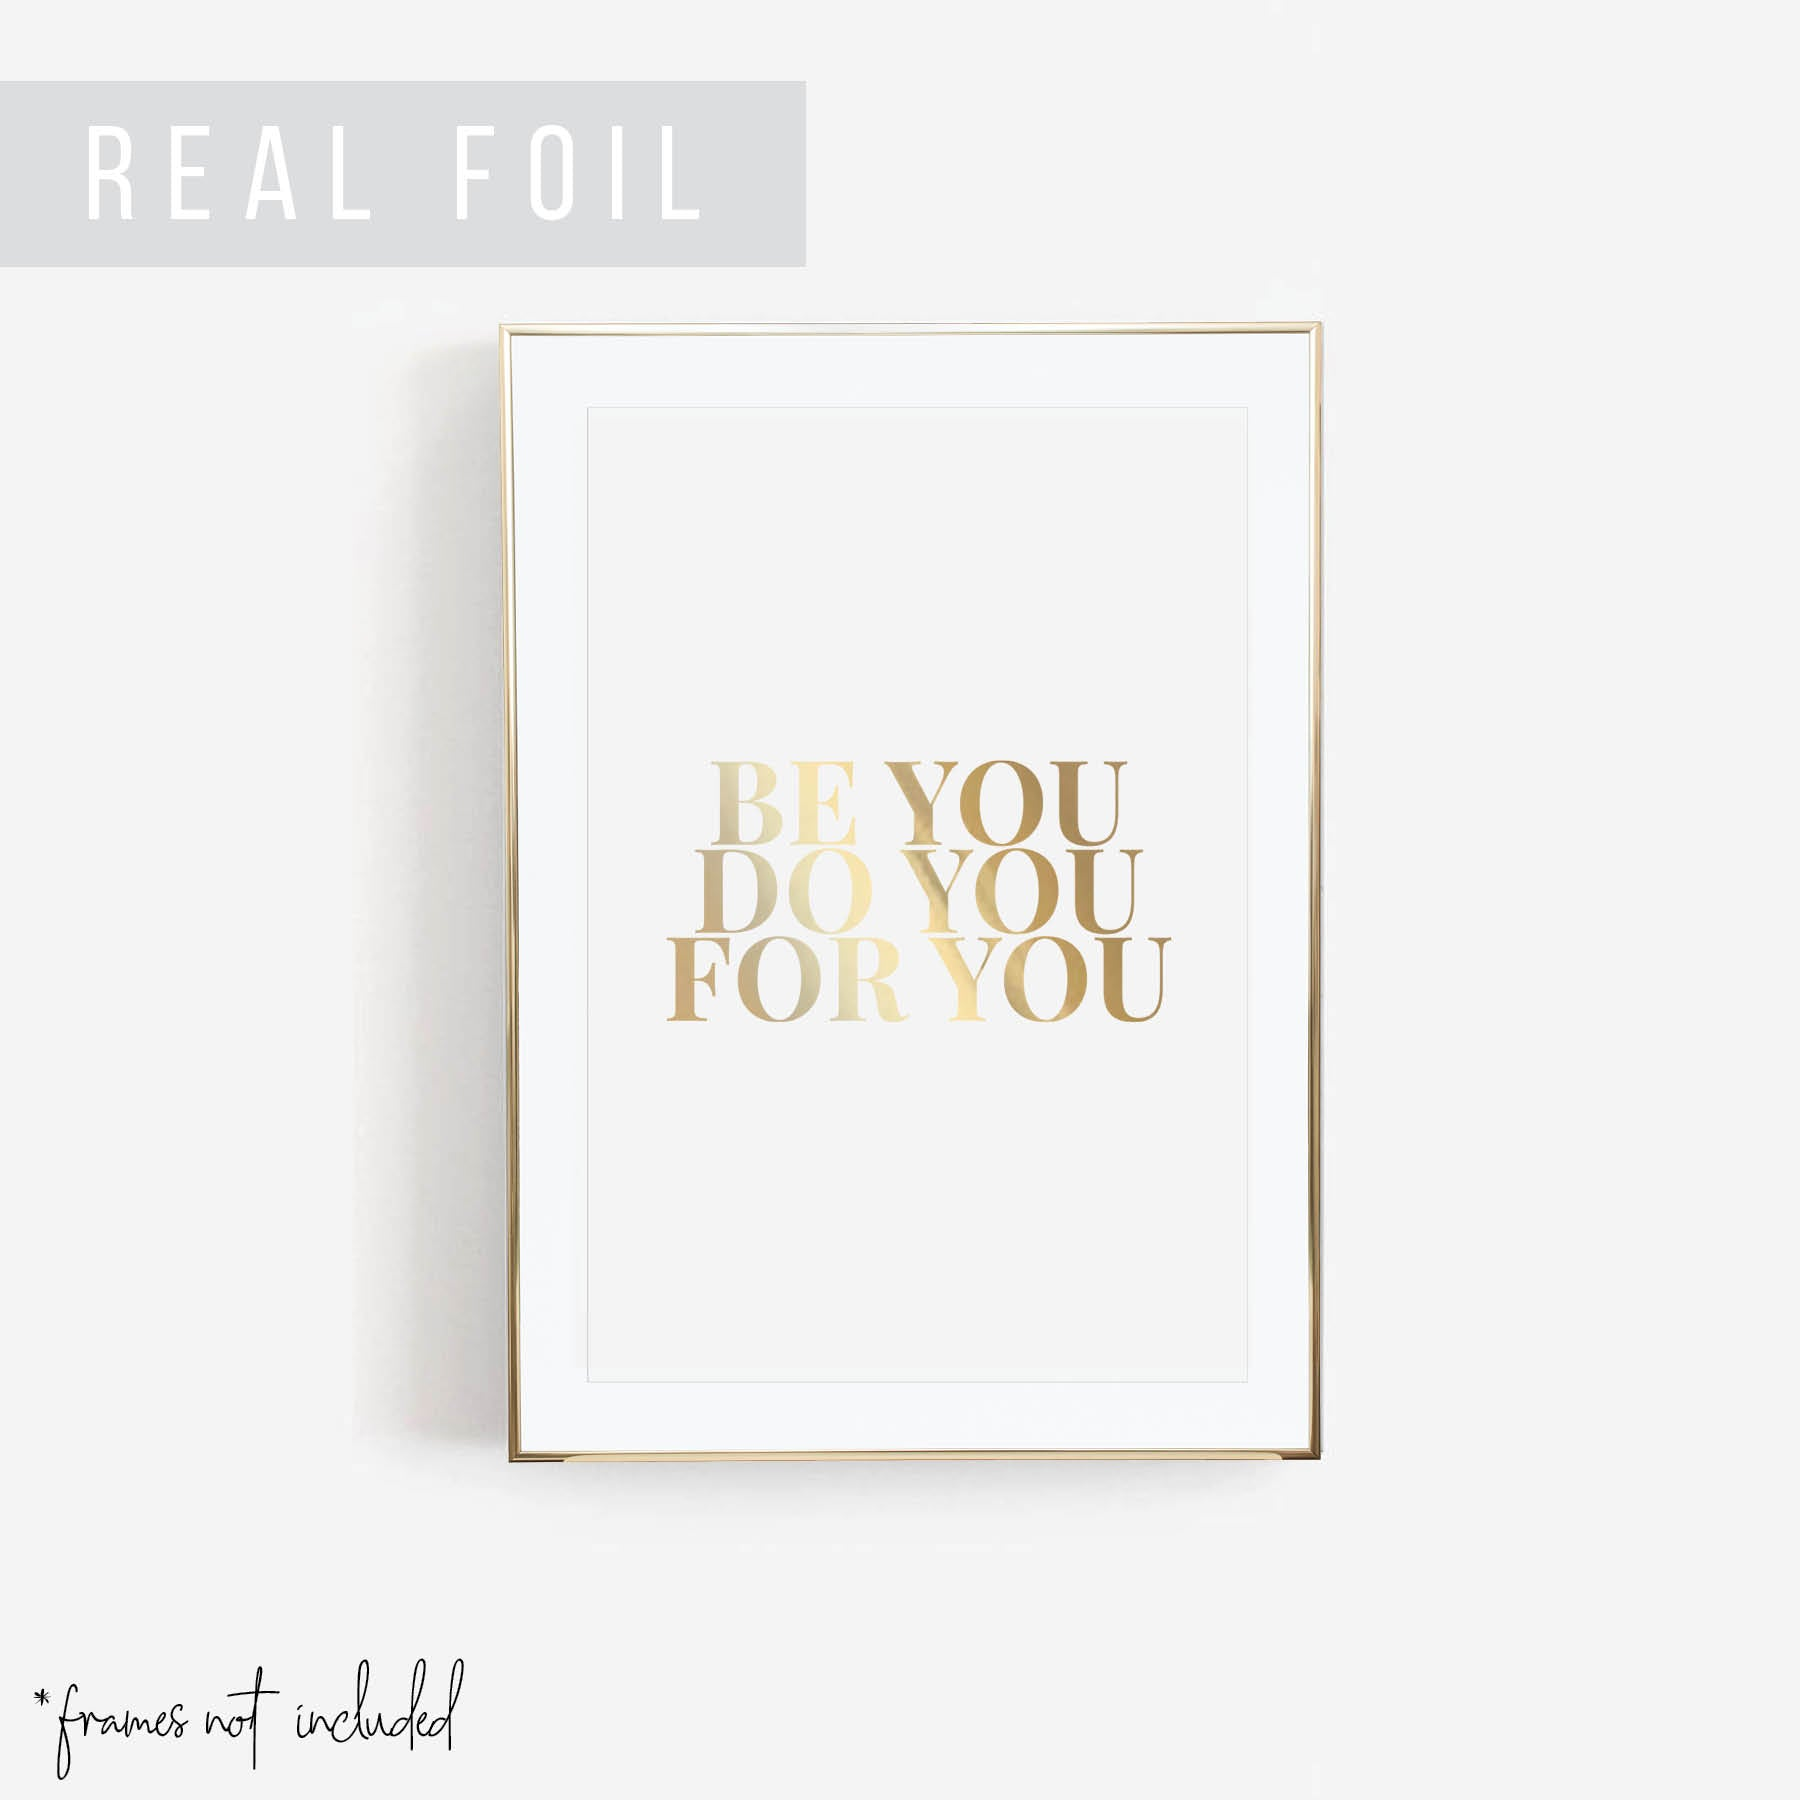 Be You. Do You. For You Foiled Art Print - Typologie Paper Co